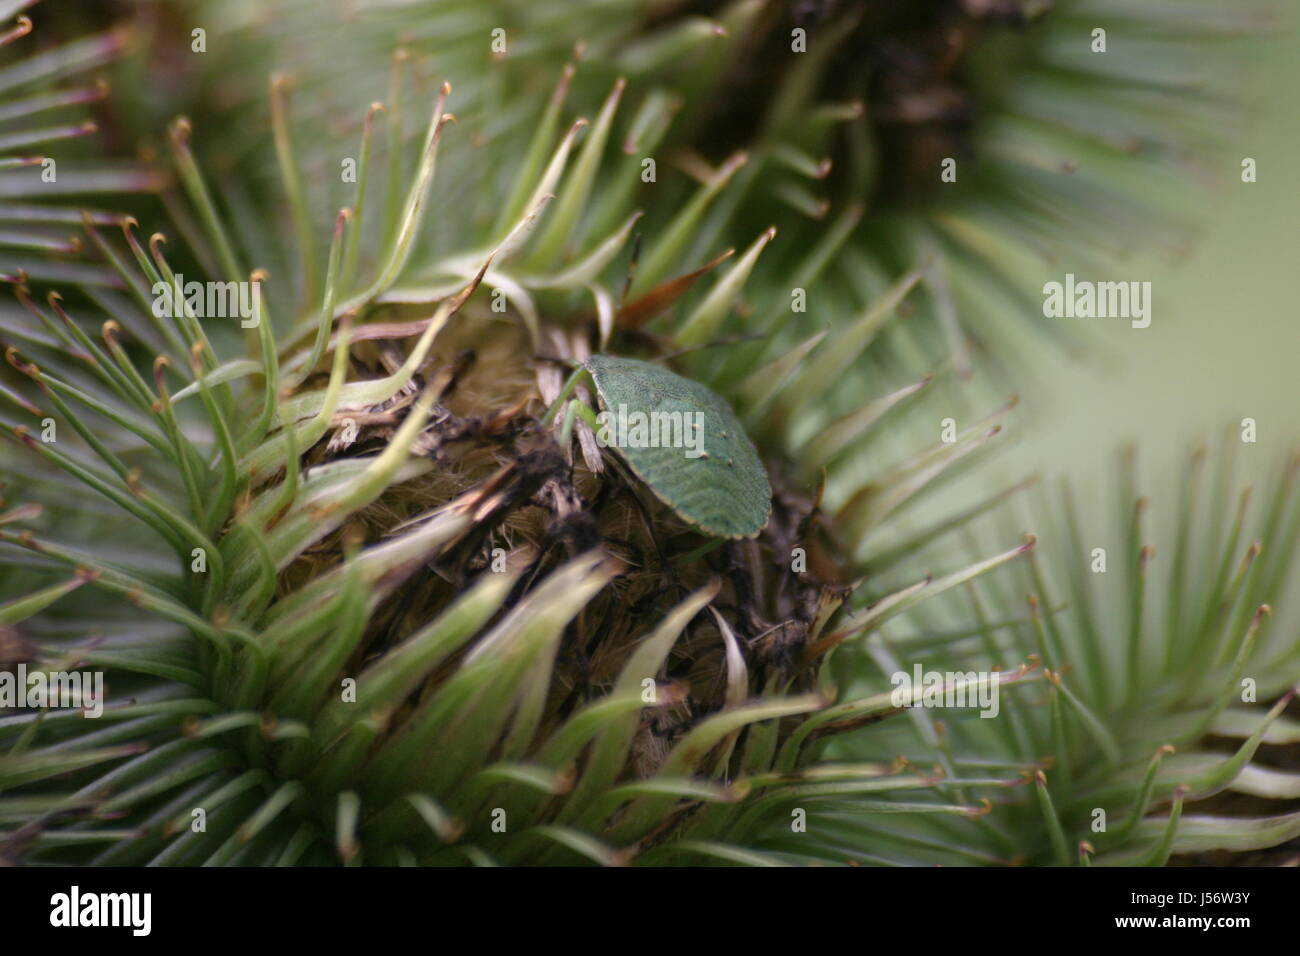 Insect Thistle Spiny Bug Bur Scratchy Grne Wanze Schildwanze Trockene  Distel Stock Image With Grne